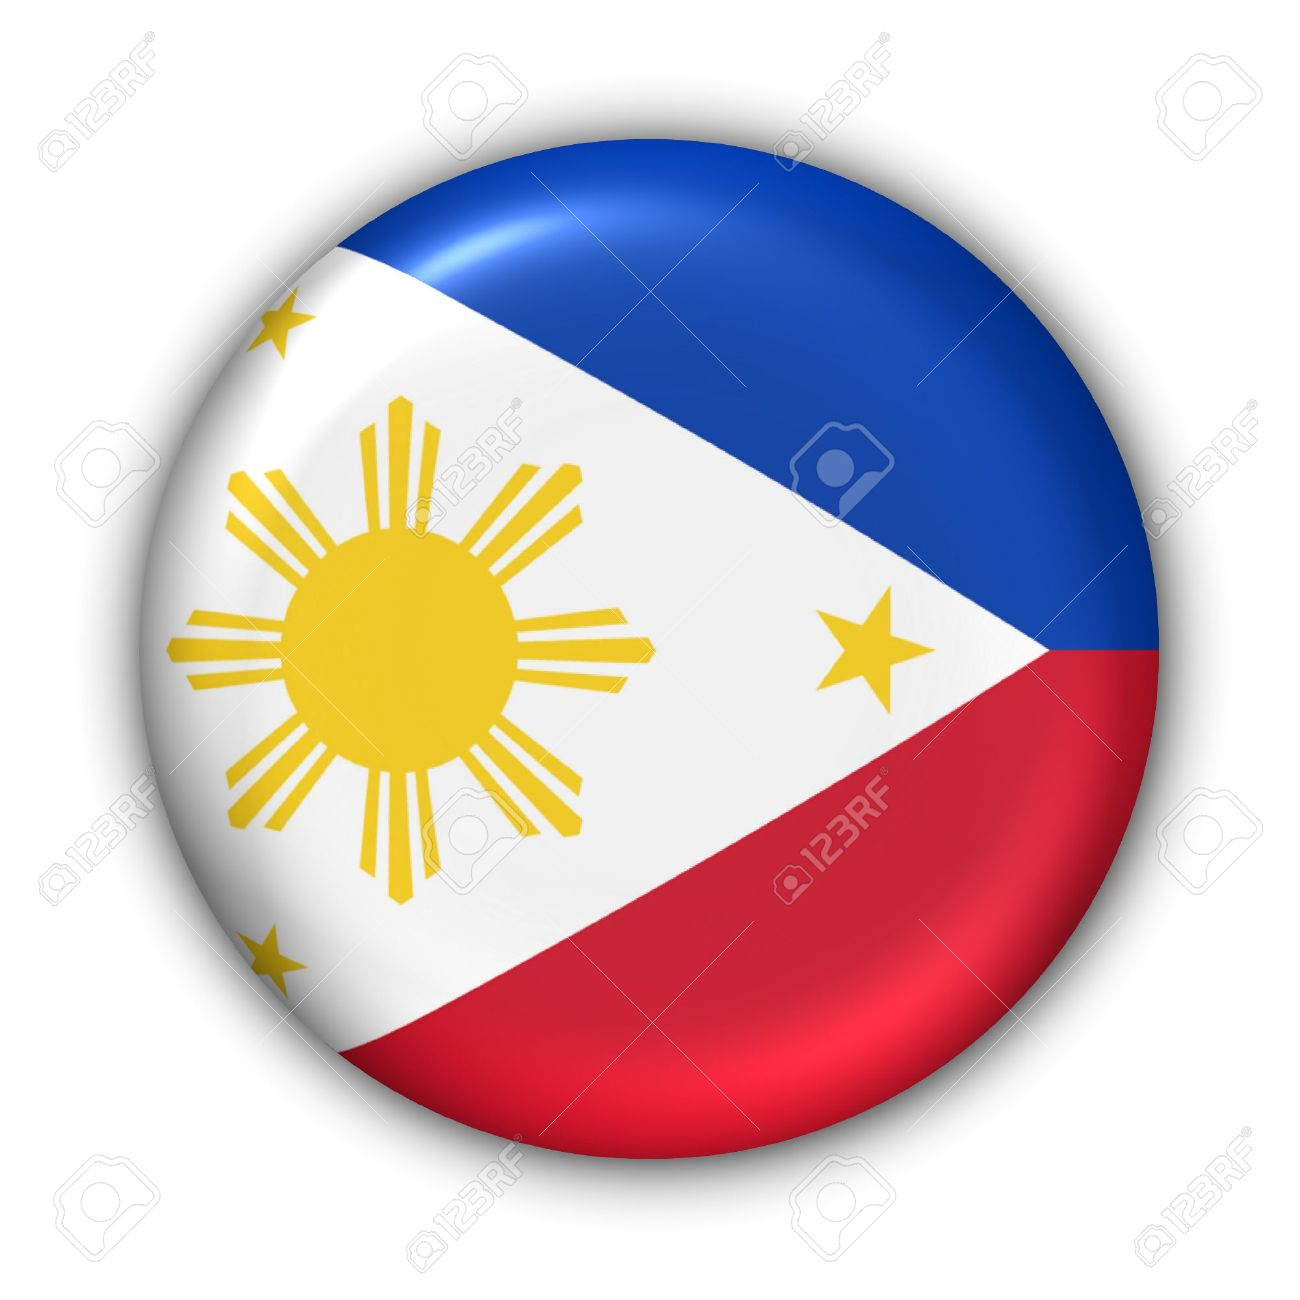 World Flag Button Series - Asia - Philippines (With Clipping Path) - 373980